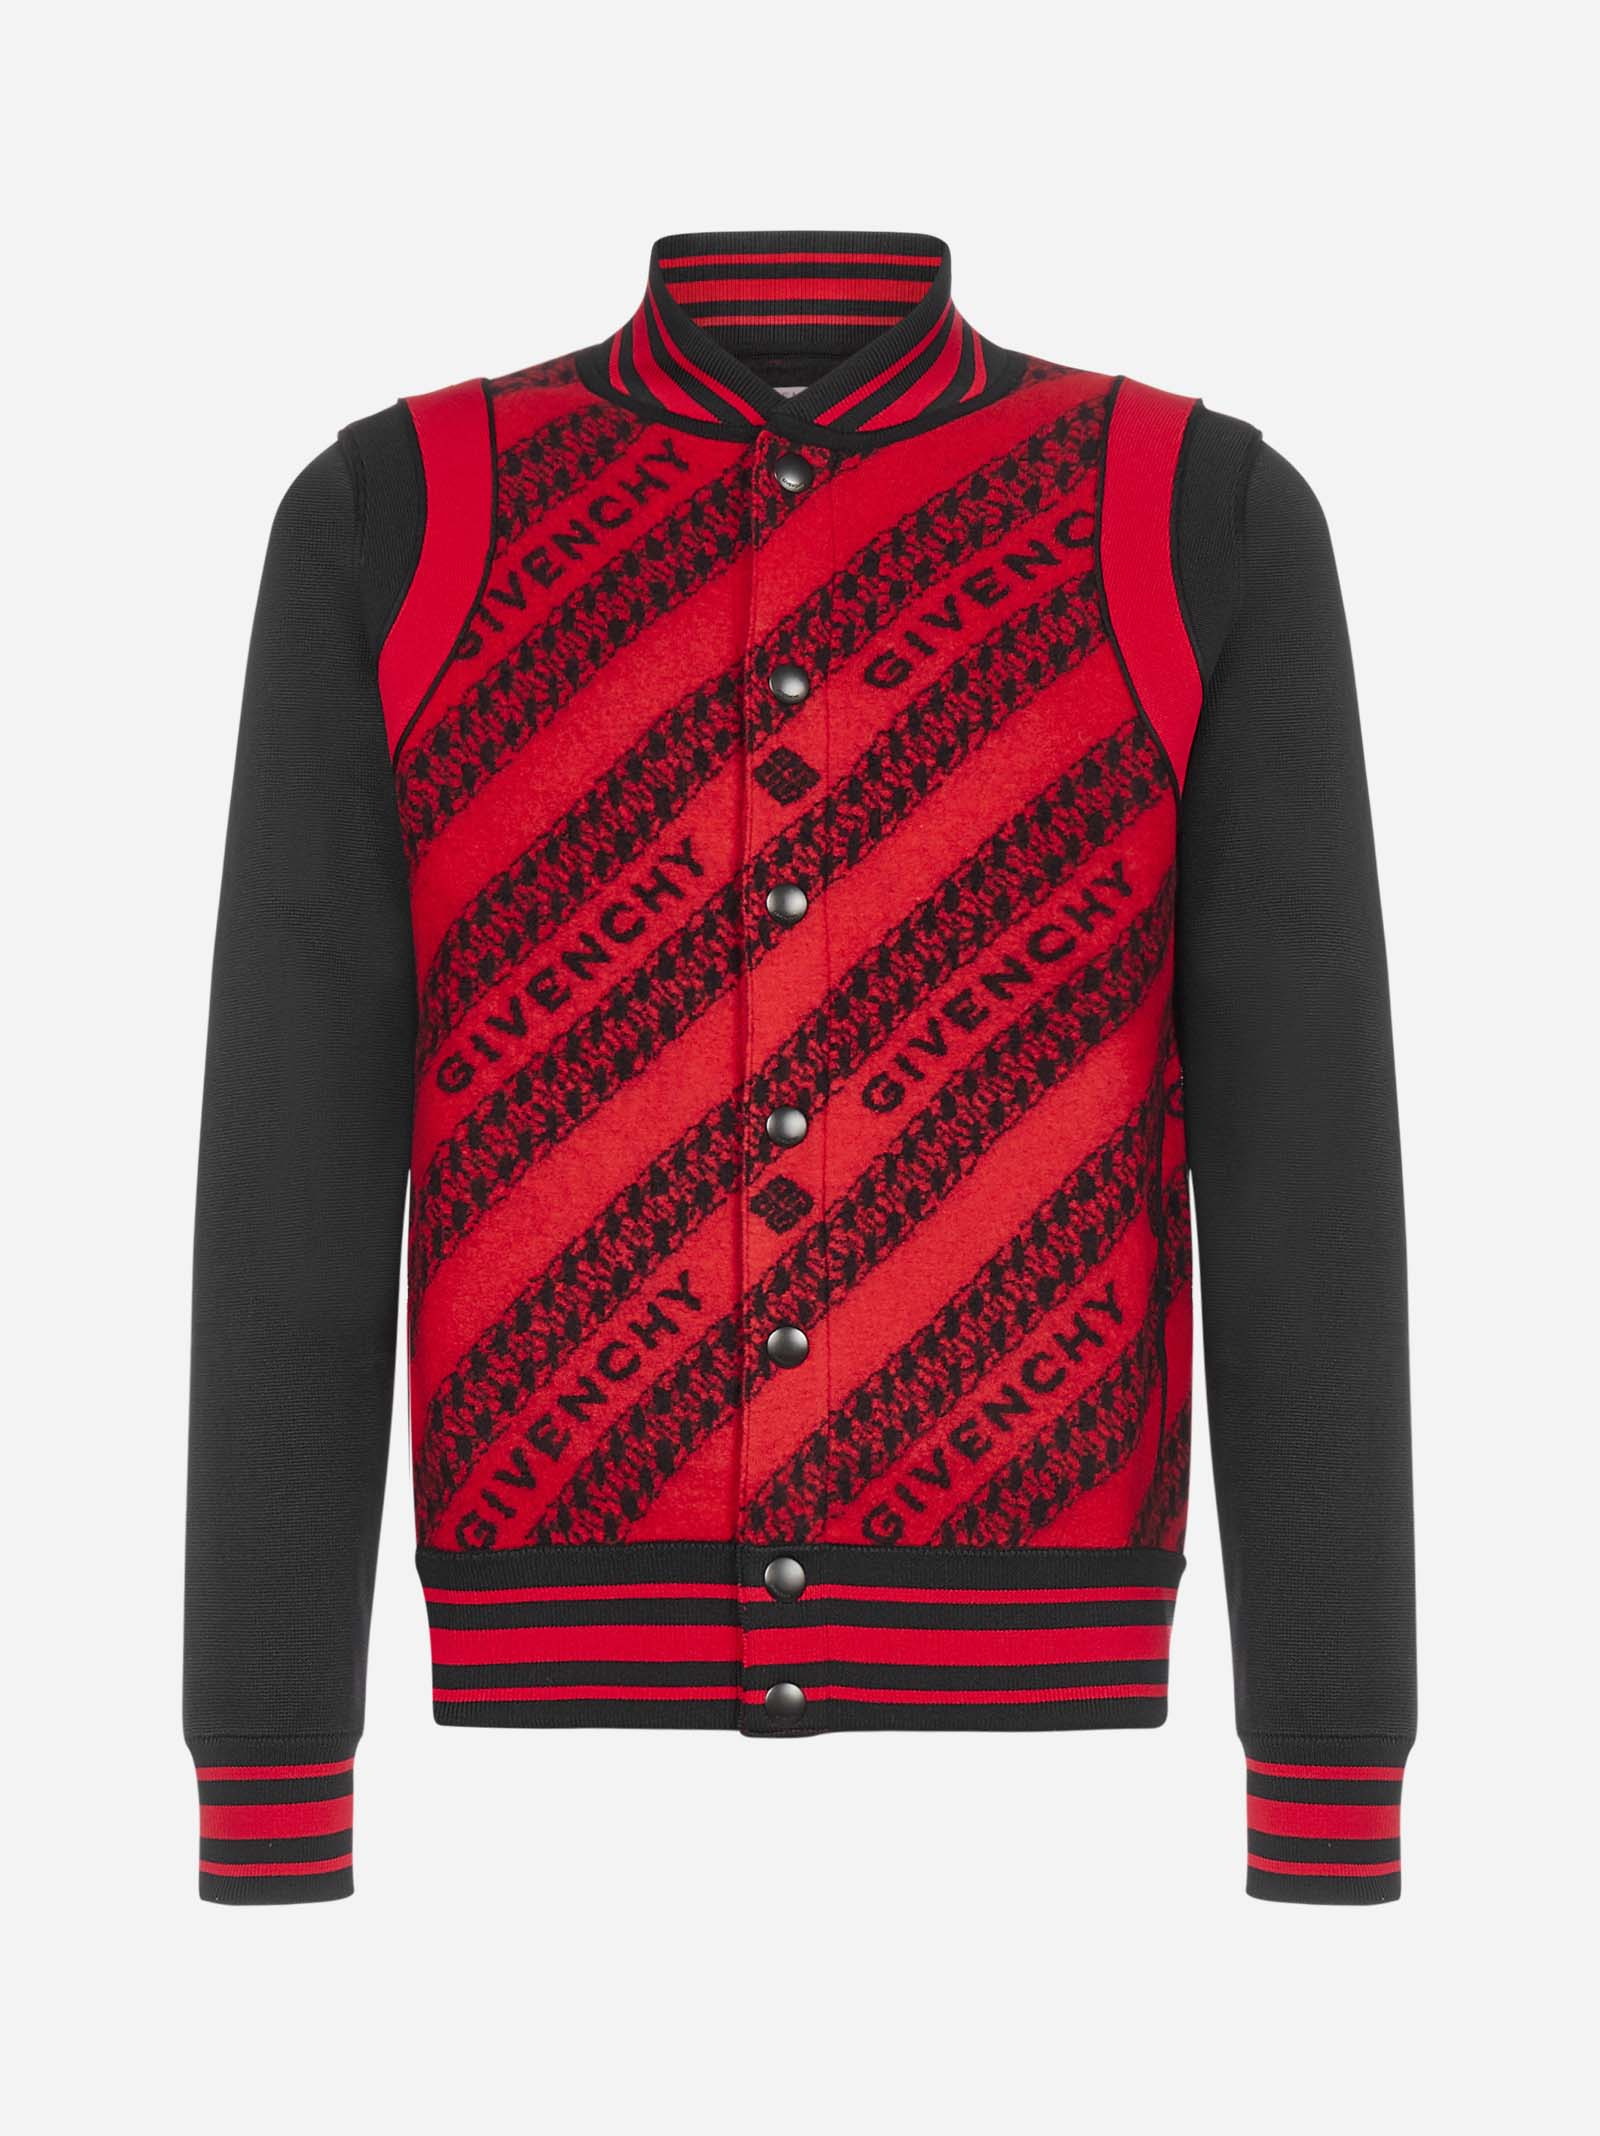 GIVENCHY ALL-OVER LOGO WOOL BOMBER JACKET